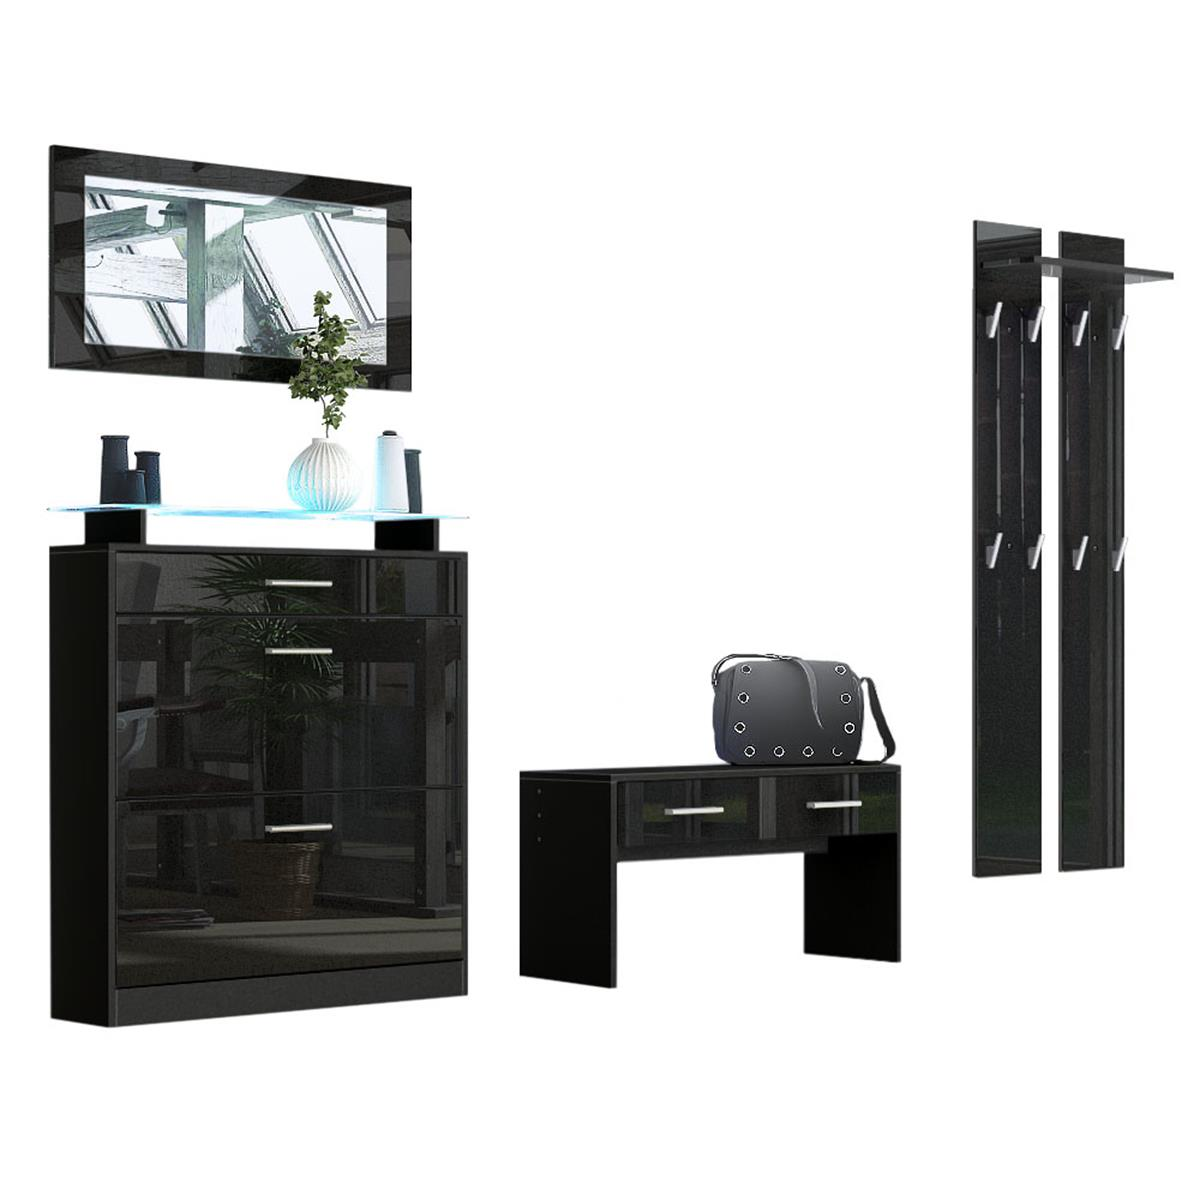 garderoben kombination loret praktische m bel f r ihren flur. Black Bedroom Furniture Sets. Home Design Ideas